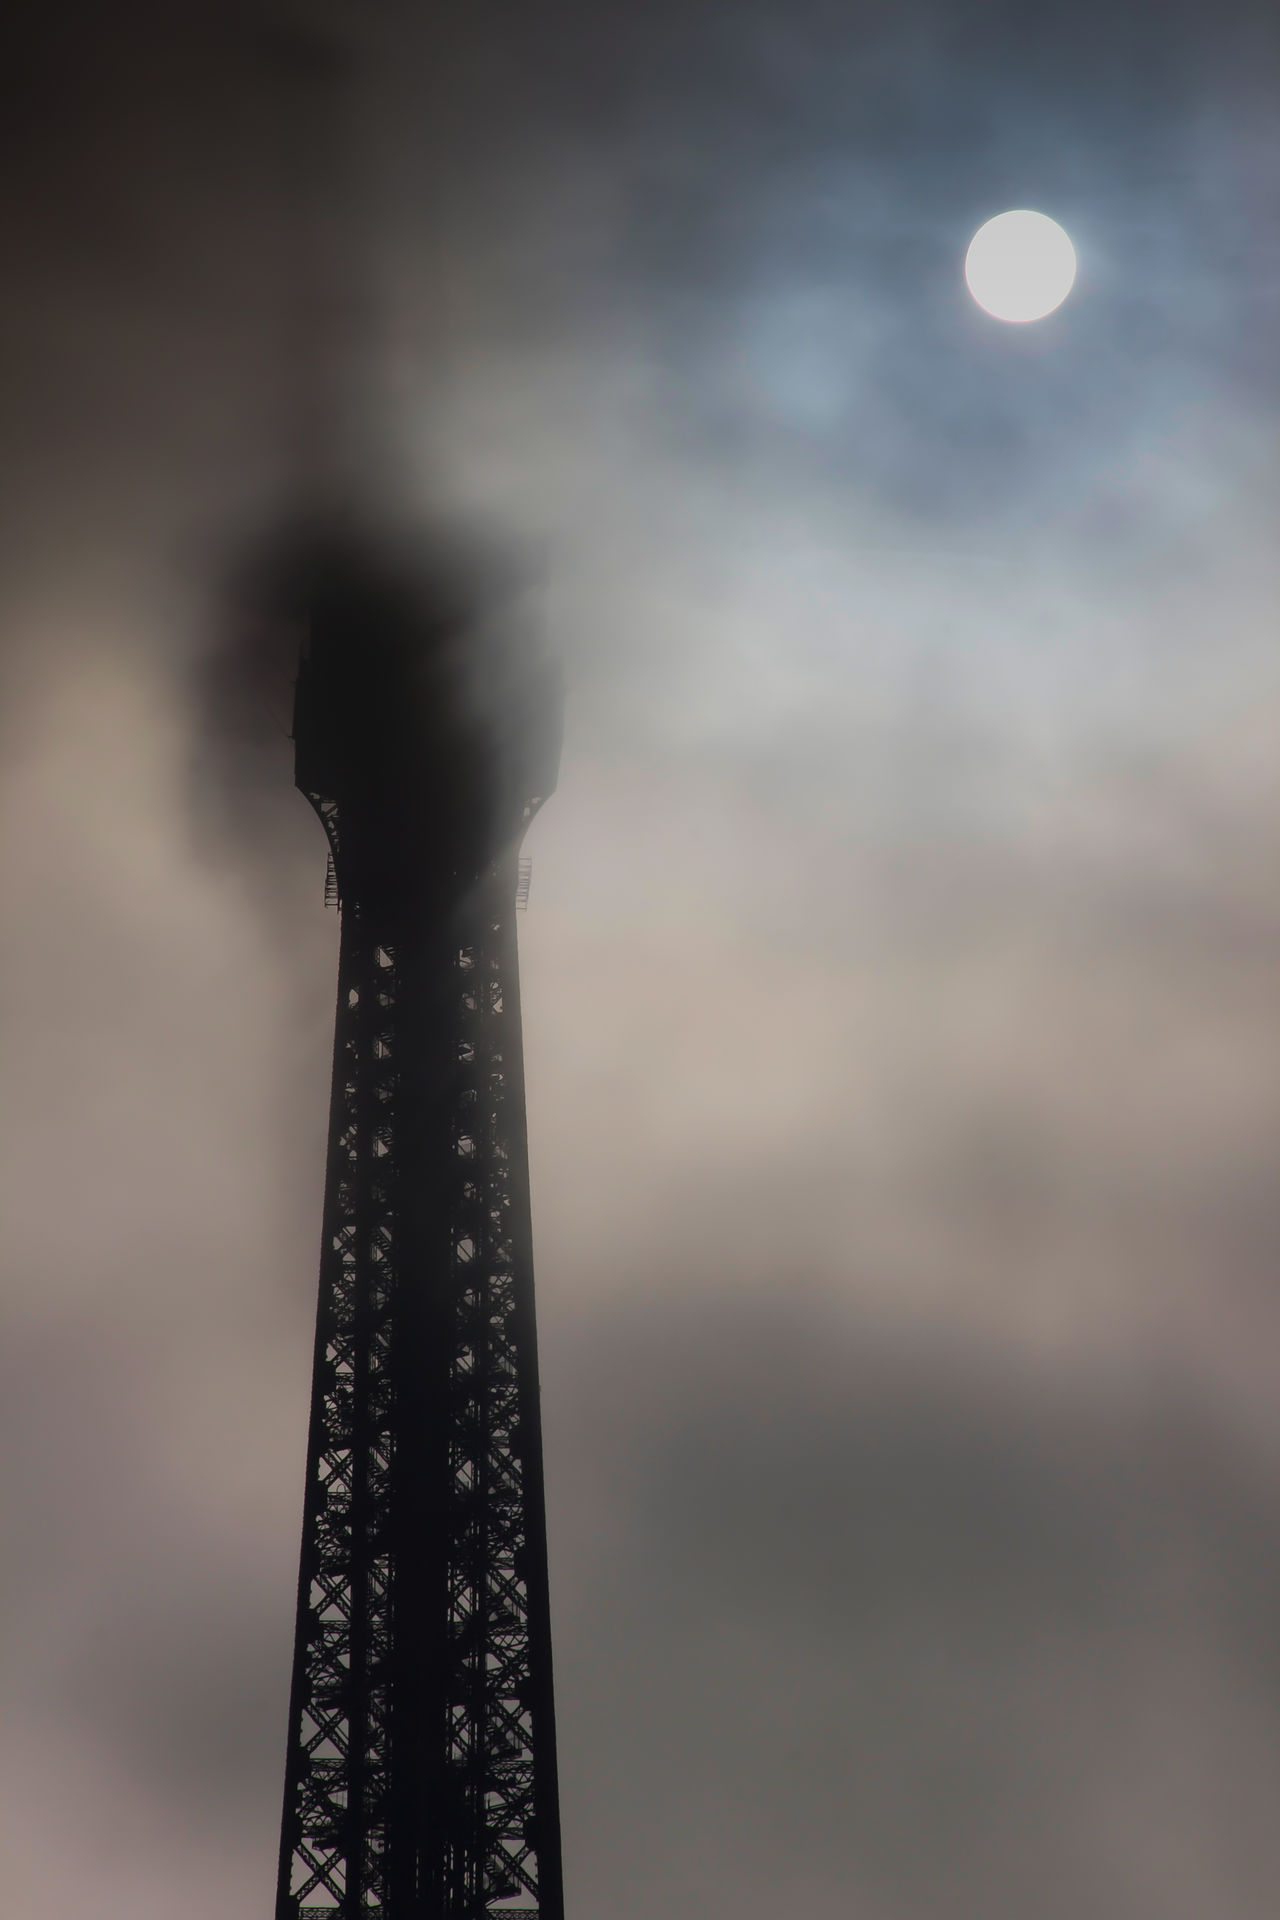 Shooting the Eiffel Tower and Trocadero on several occasions/assignments. Architecture Beautiful Light Capital Cities  Cloud - Sky Eiffel Tower Foggy Day Head Up In The Clouds International Landmark Landmark Only Partially Visible Paris Pattern Rare Weather Phenomenon Sky Steel Structure Sun Rising Against Fine Art Photography